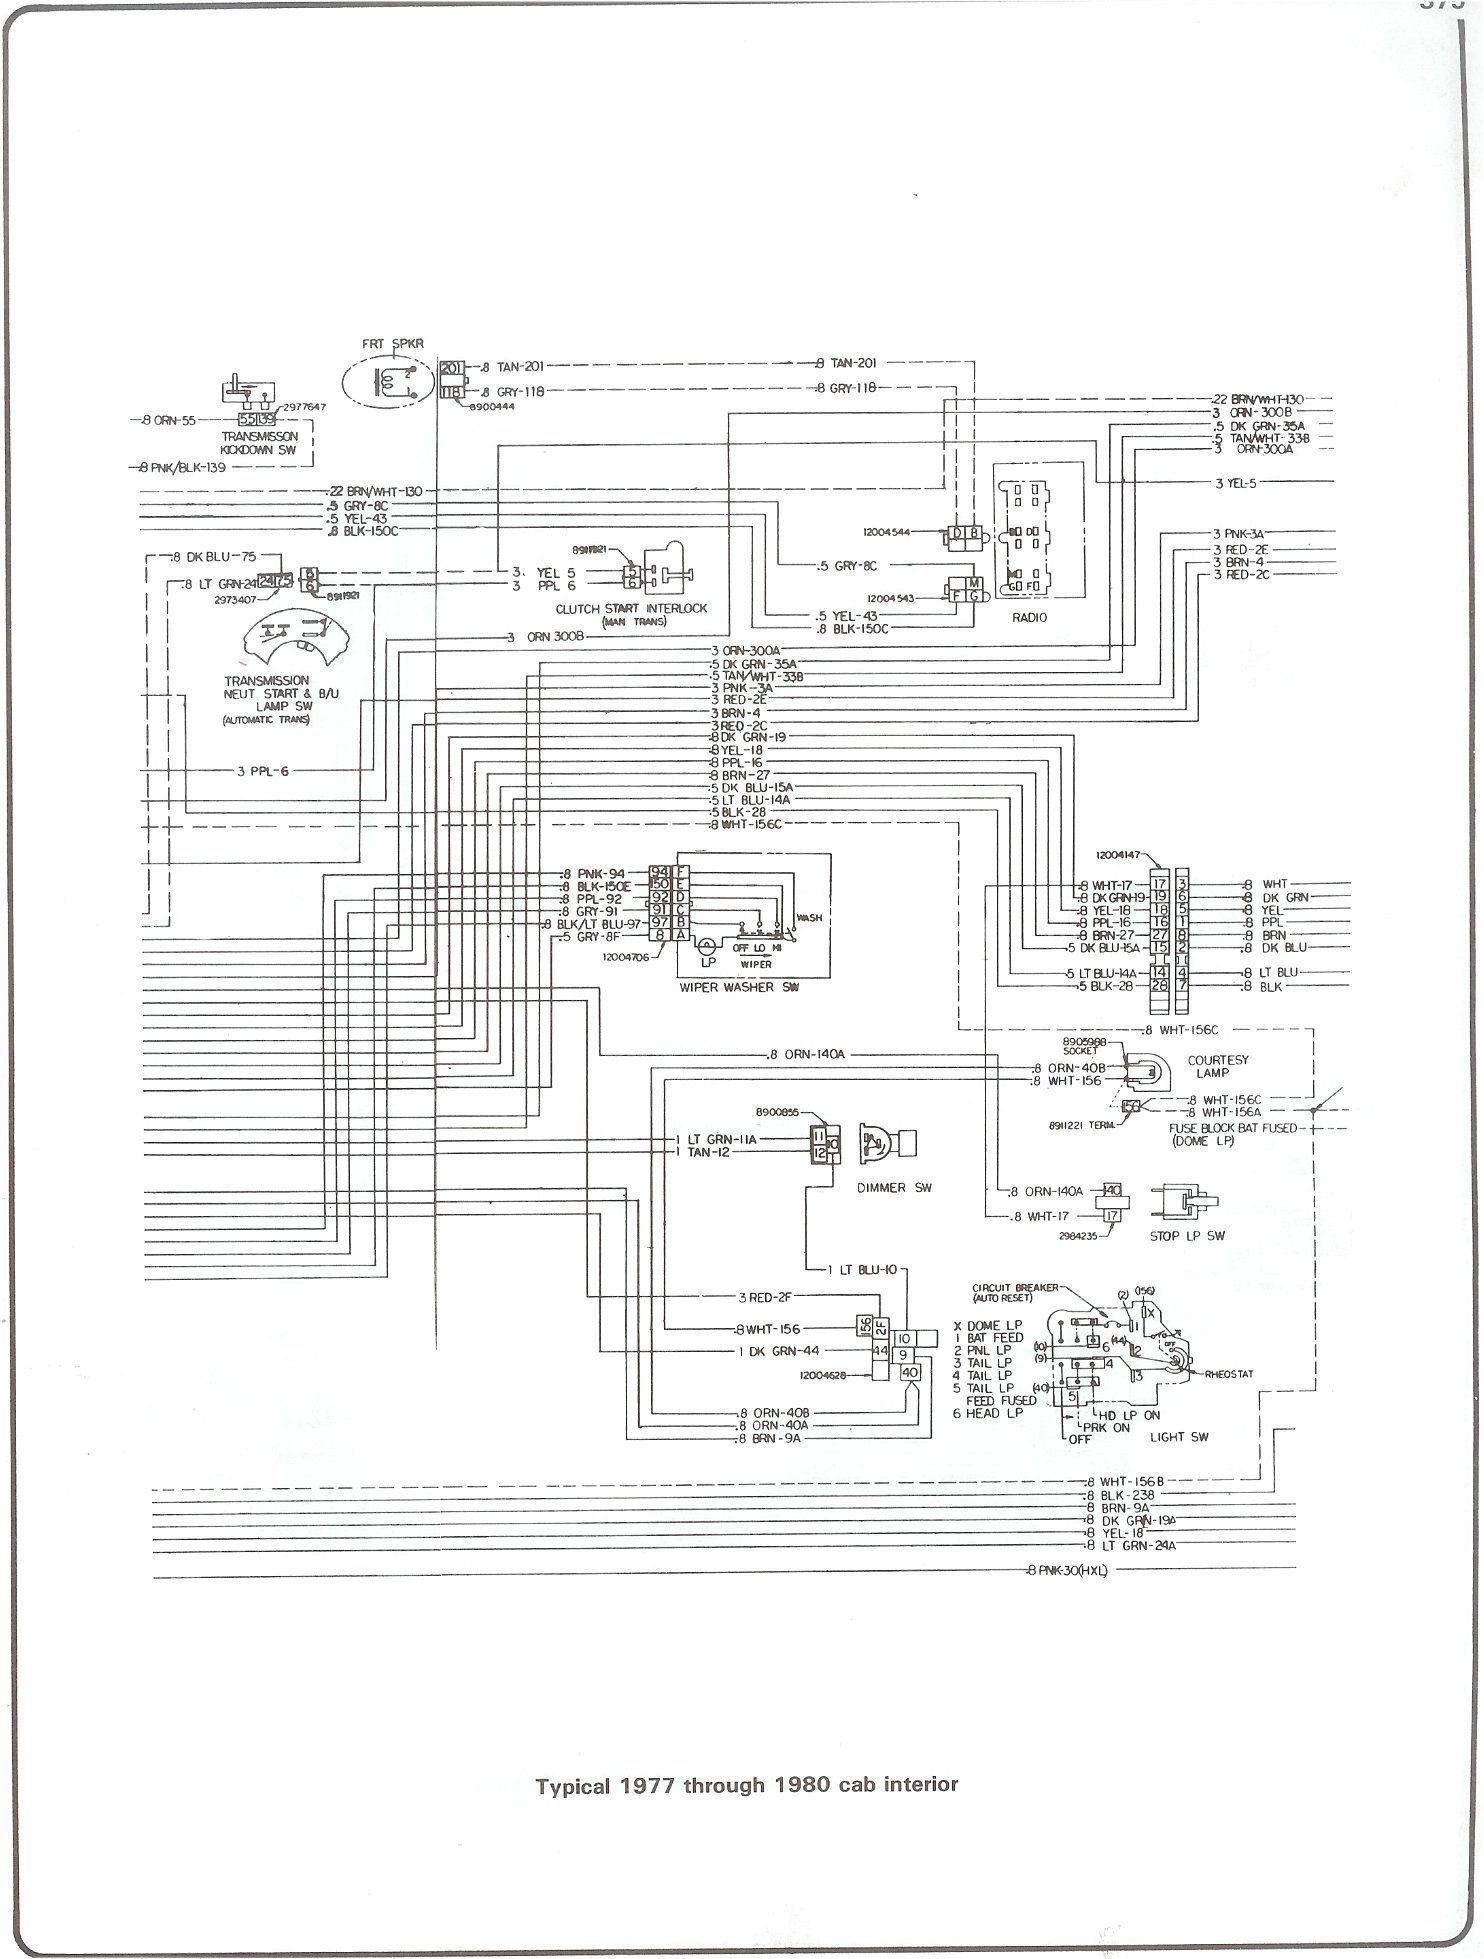 77 80_cab_inter complete 73 87 wiring diagrams 4 wire pickup wiring diagram at aneh.co